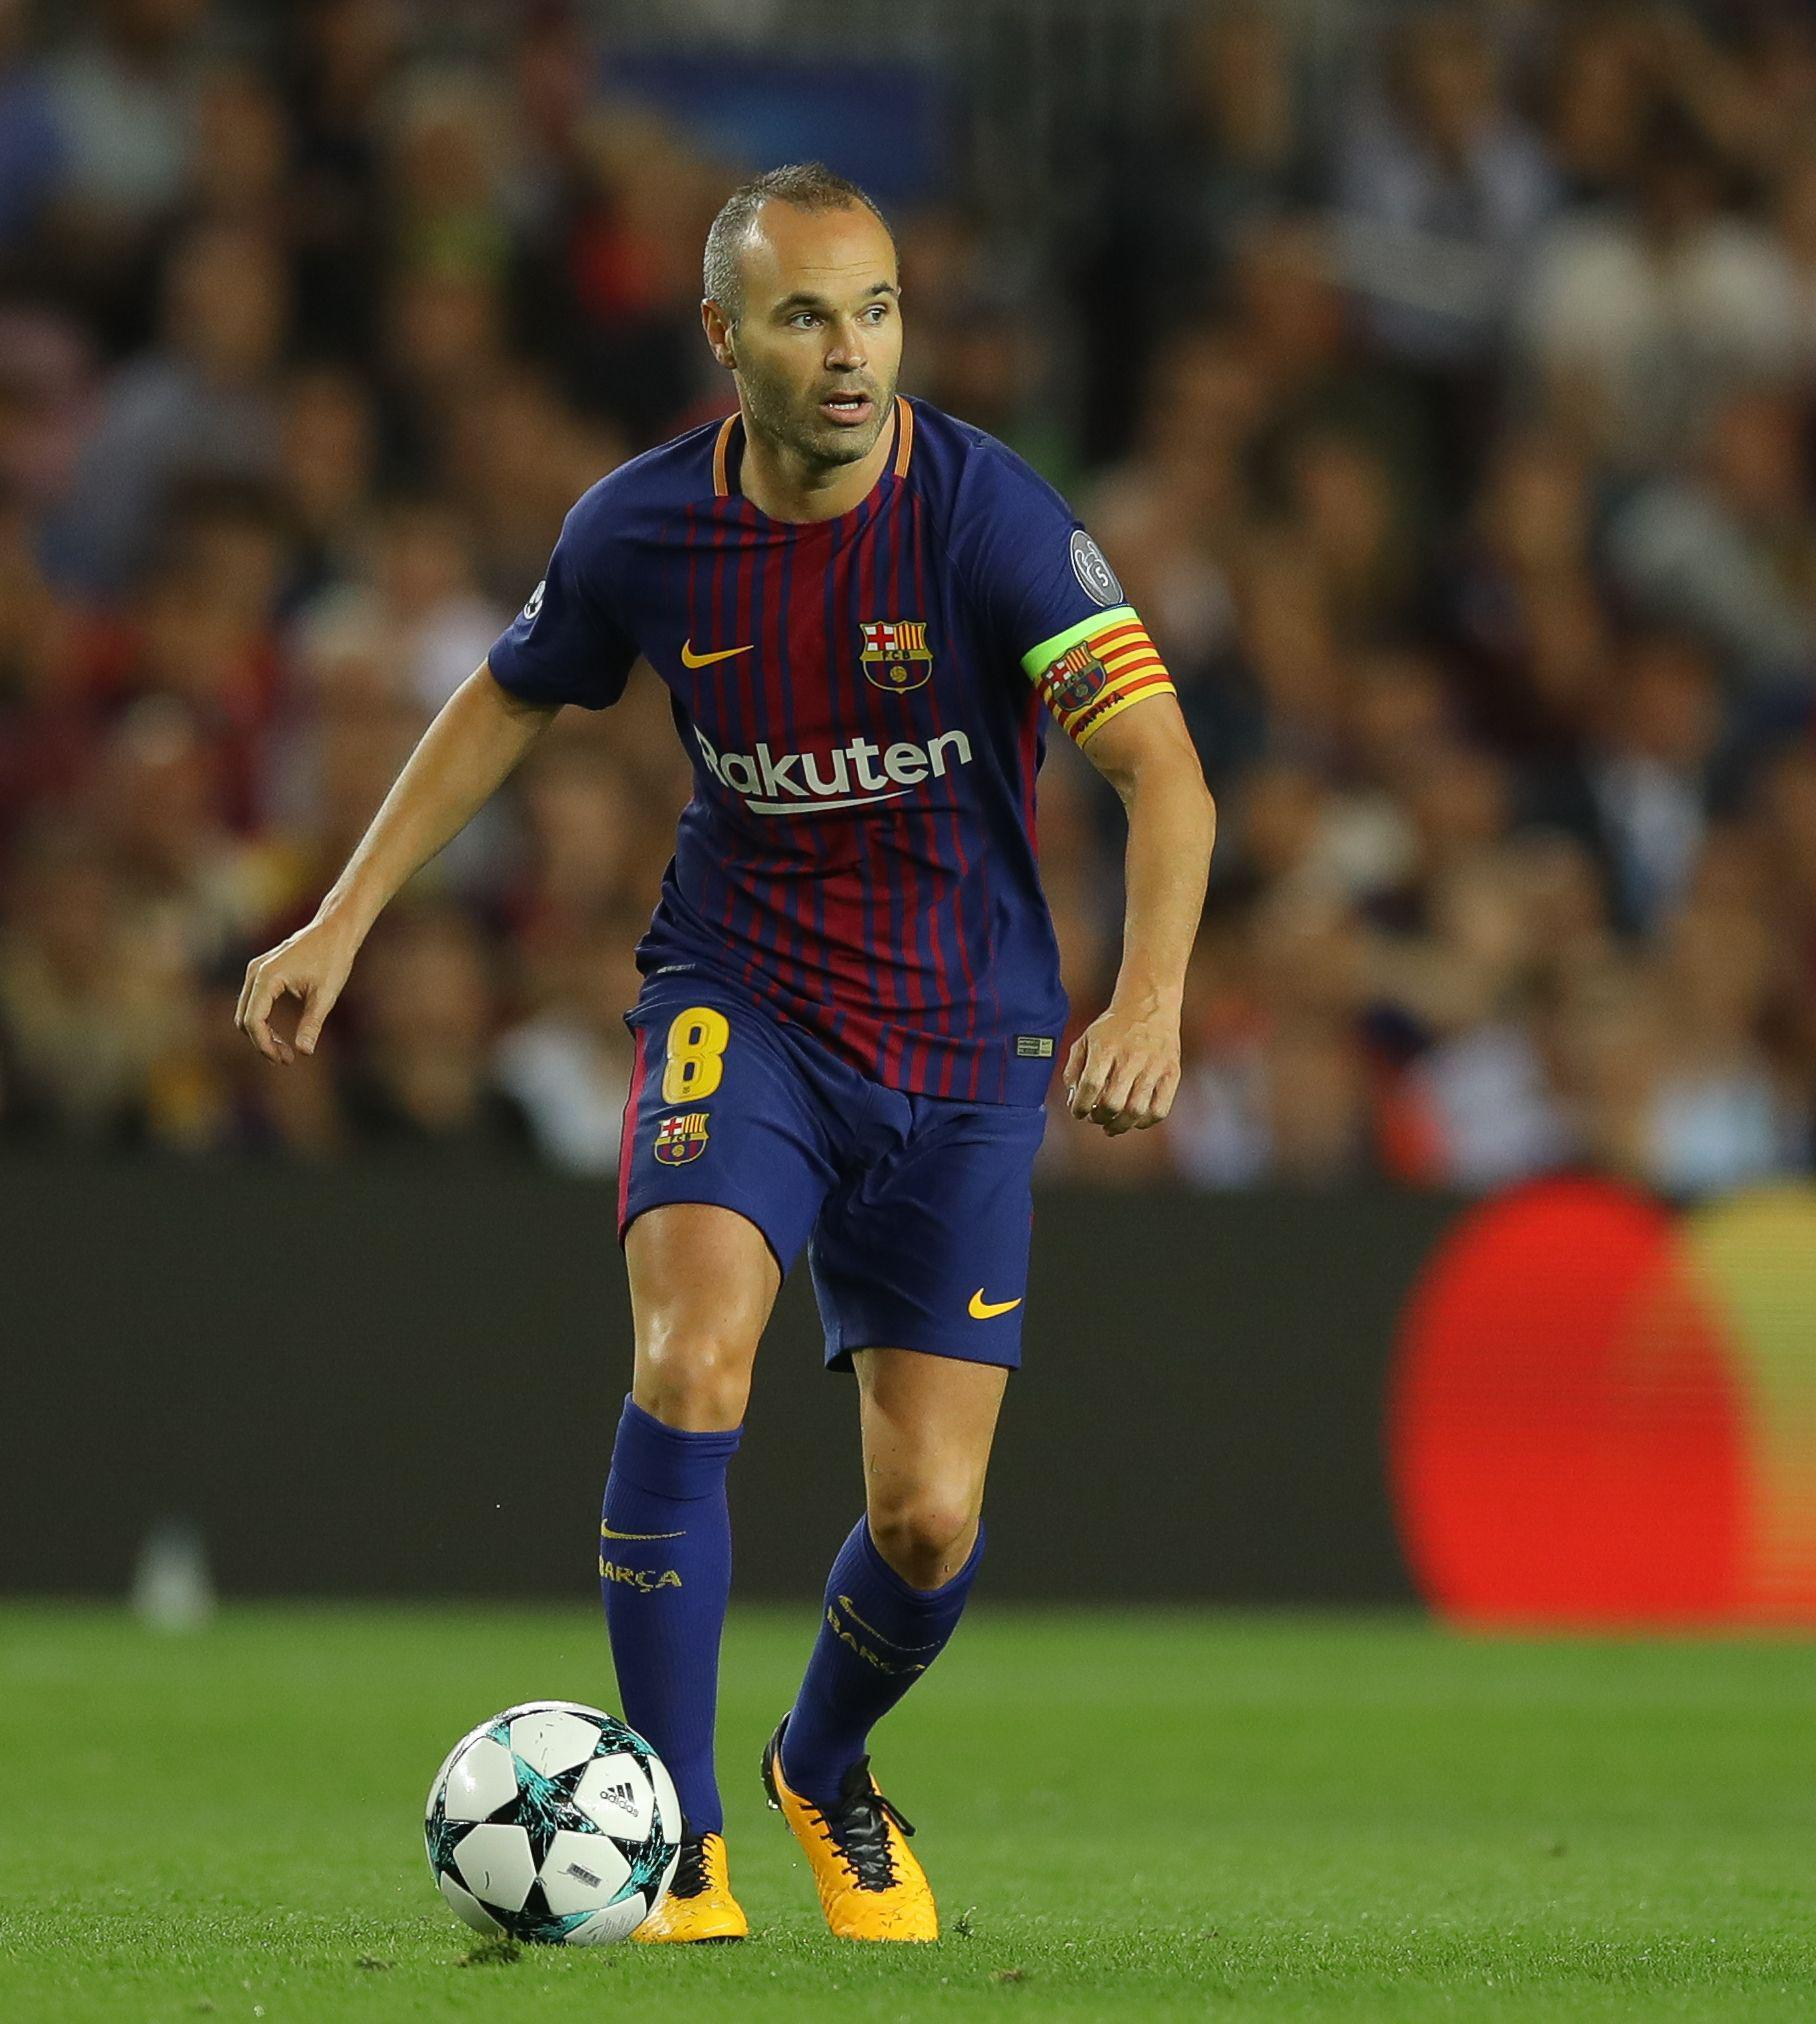 Andres Iniesta has been the benchmark for a midfielder over the past decade